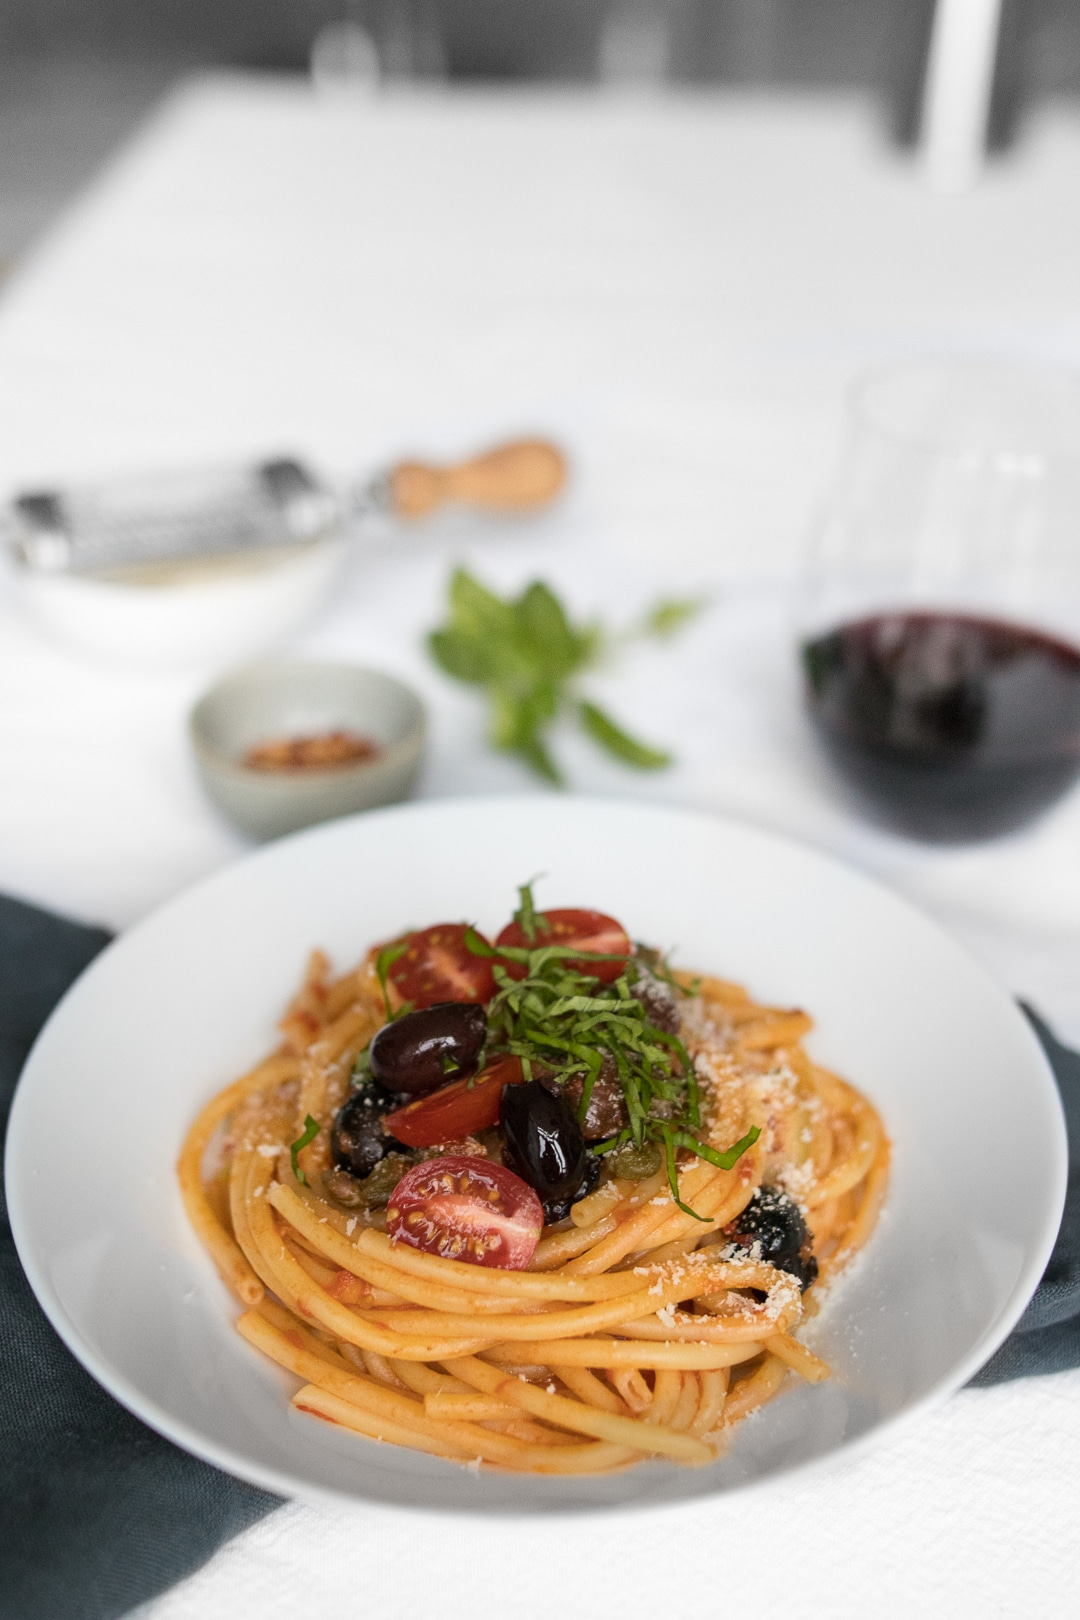 Spaghetti Puttanesca next to a glass of red wine